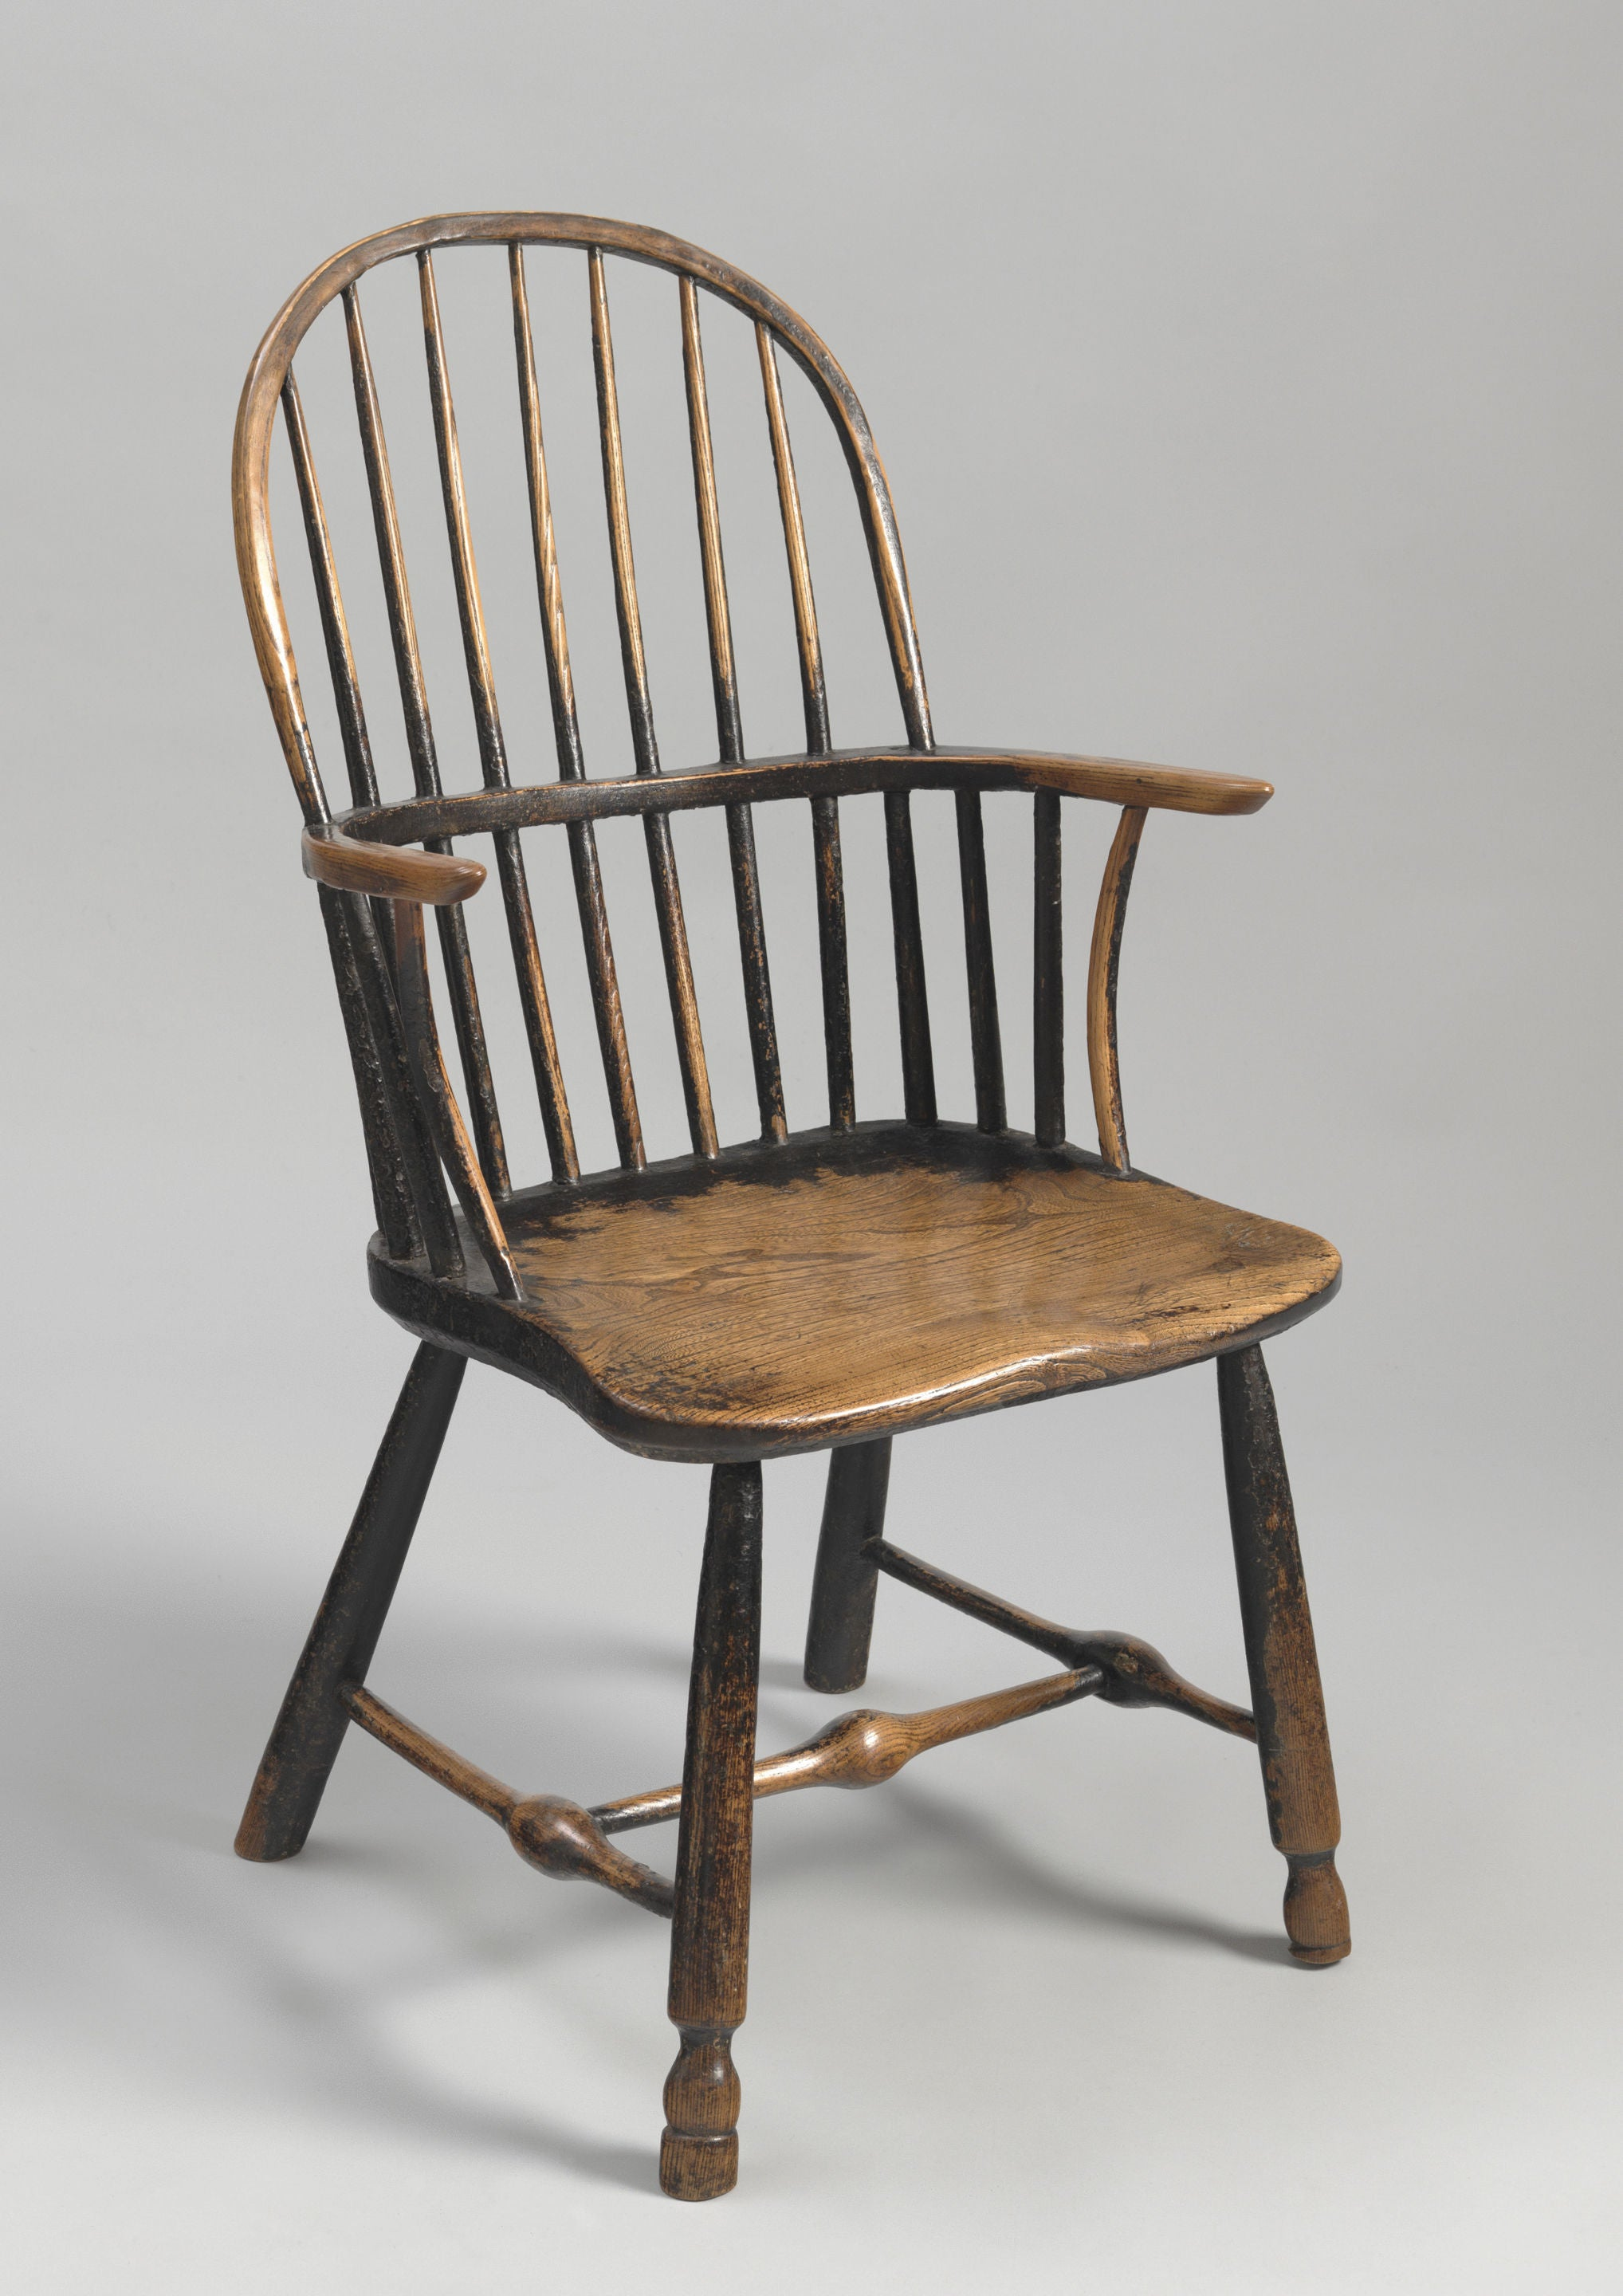 George III Period Primitive Bow Backed Windsor Armchair